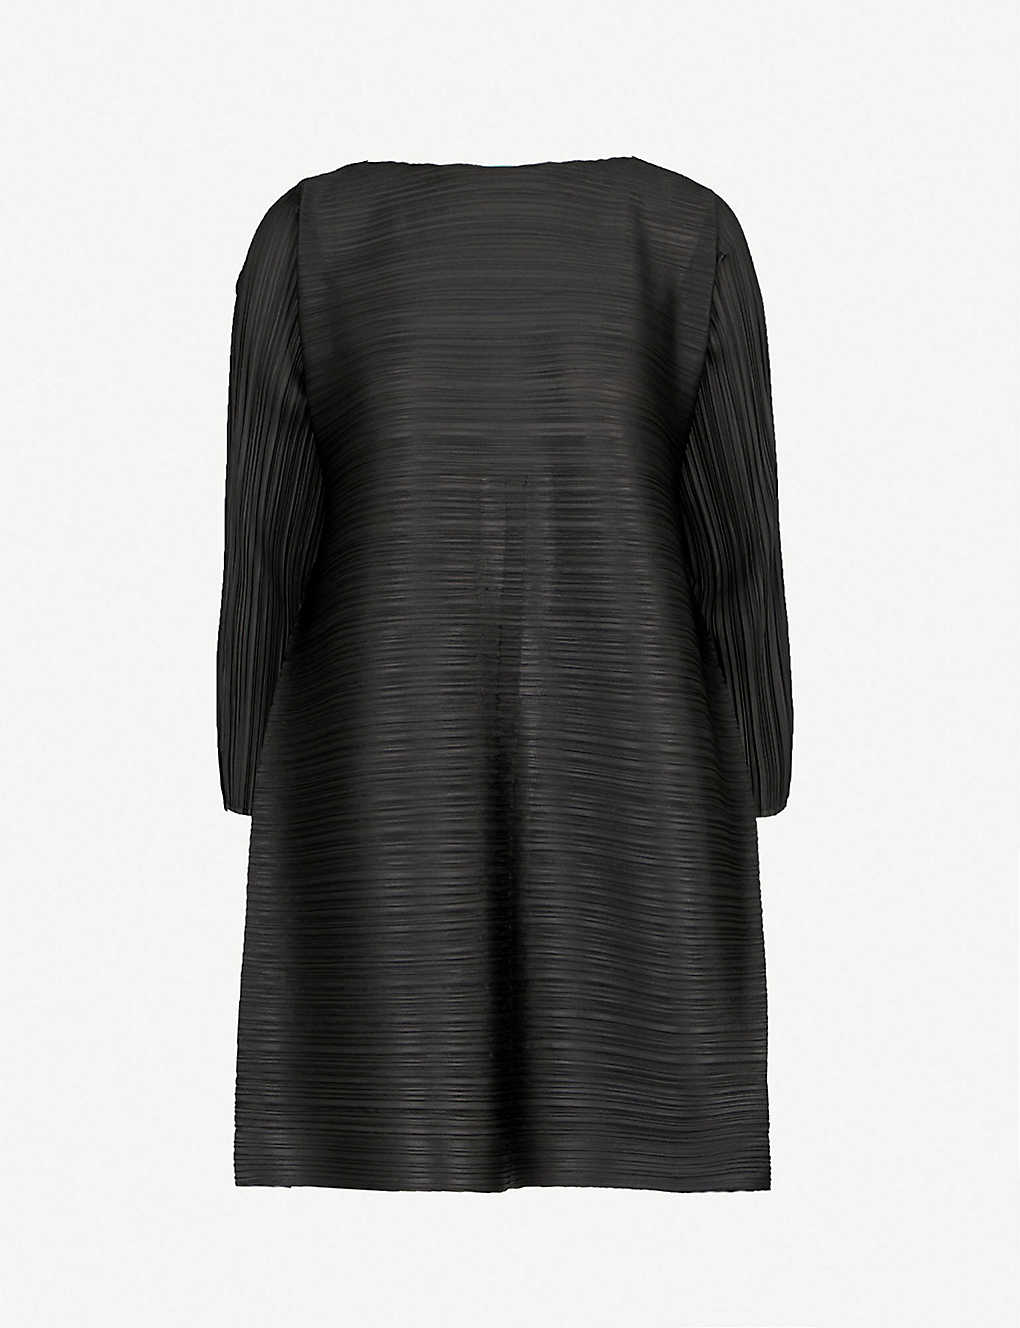 Please Miyake Pleats Edgy Pleated Issey Bounce Tunic 5Rq4LAc3jS